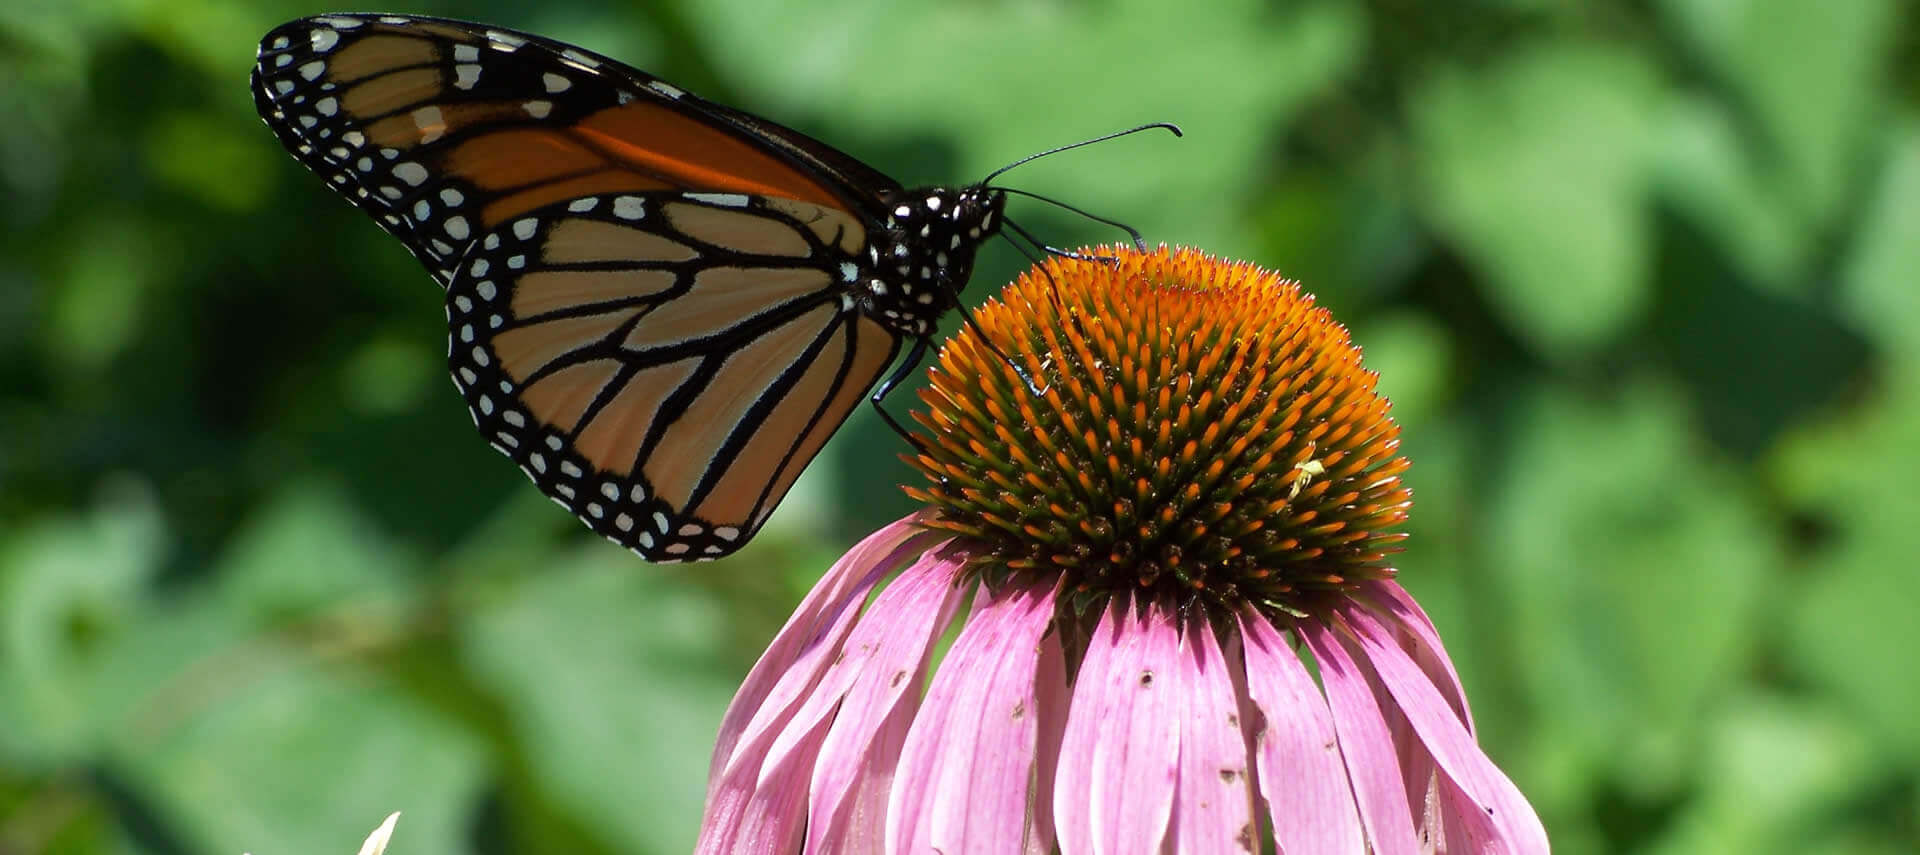 A Monarch butterfly rests on a pink flower in a green garden.